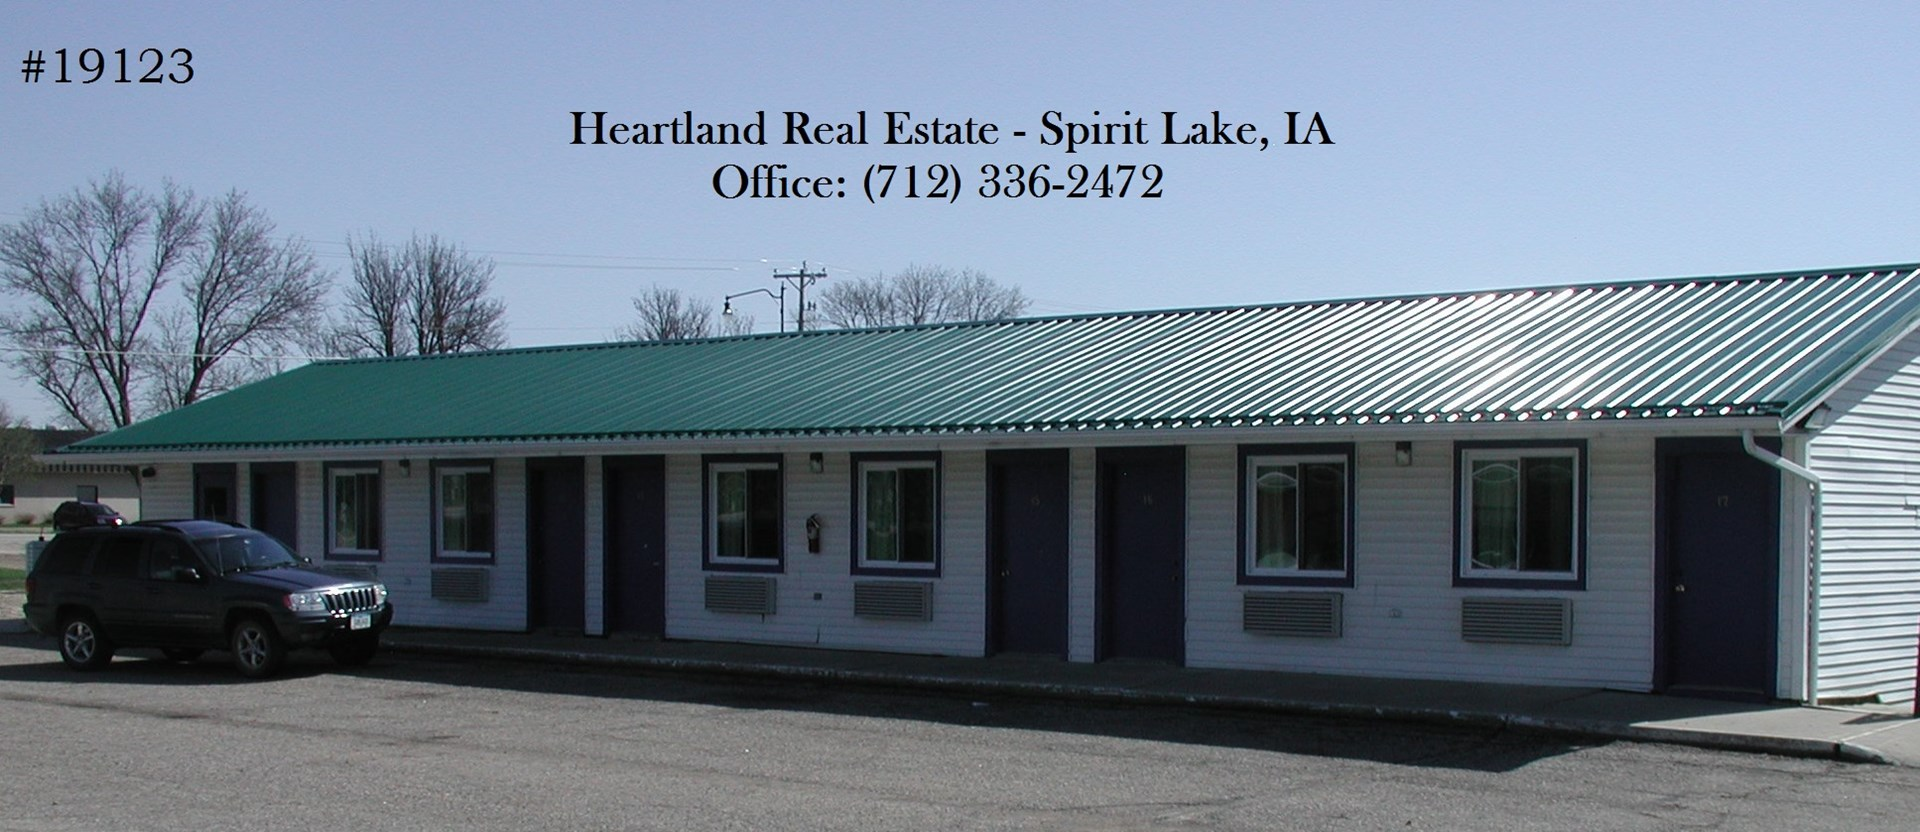 Motel For Sale Iowa Great Lakes Region - 19123